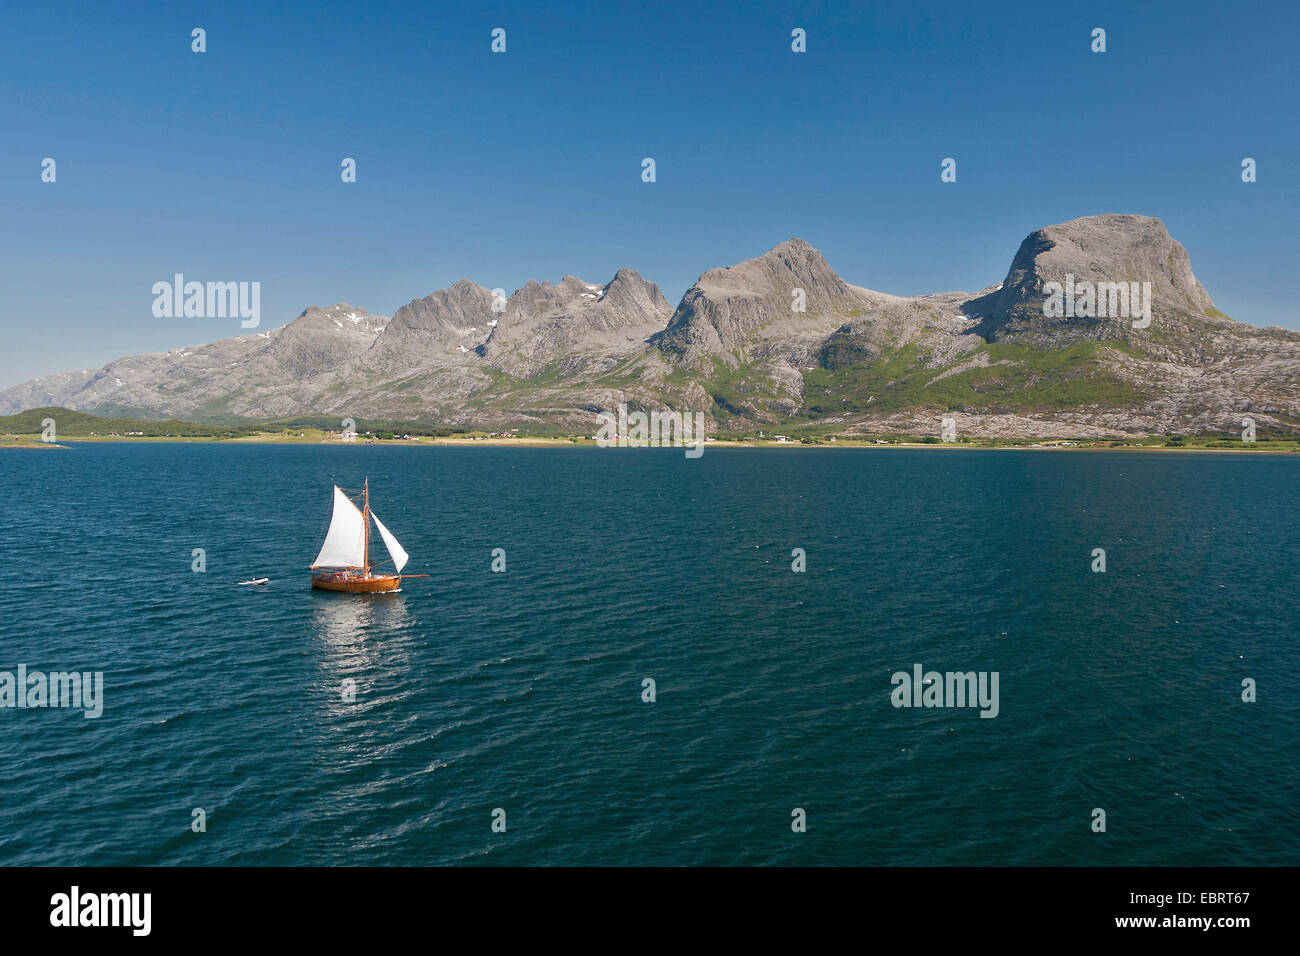 sailboat cruising down Alstenfjorden, In the background are the famous mountain range called the Seven Sisters, - Stock Image